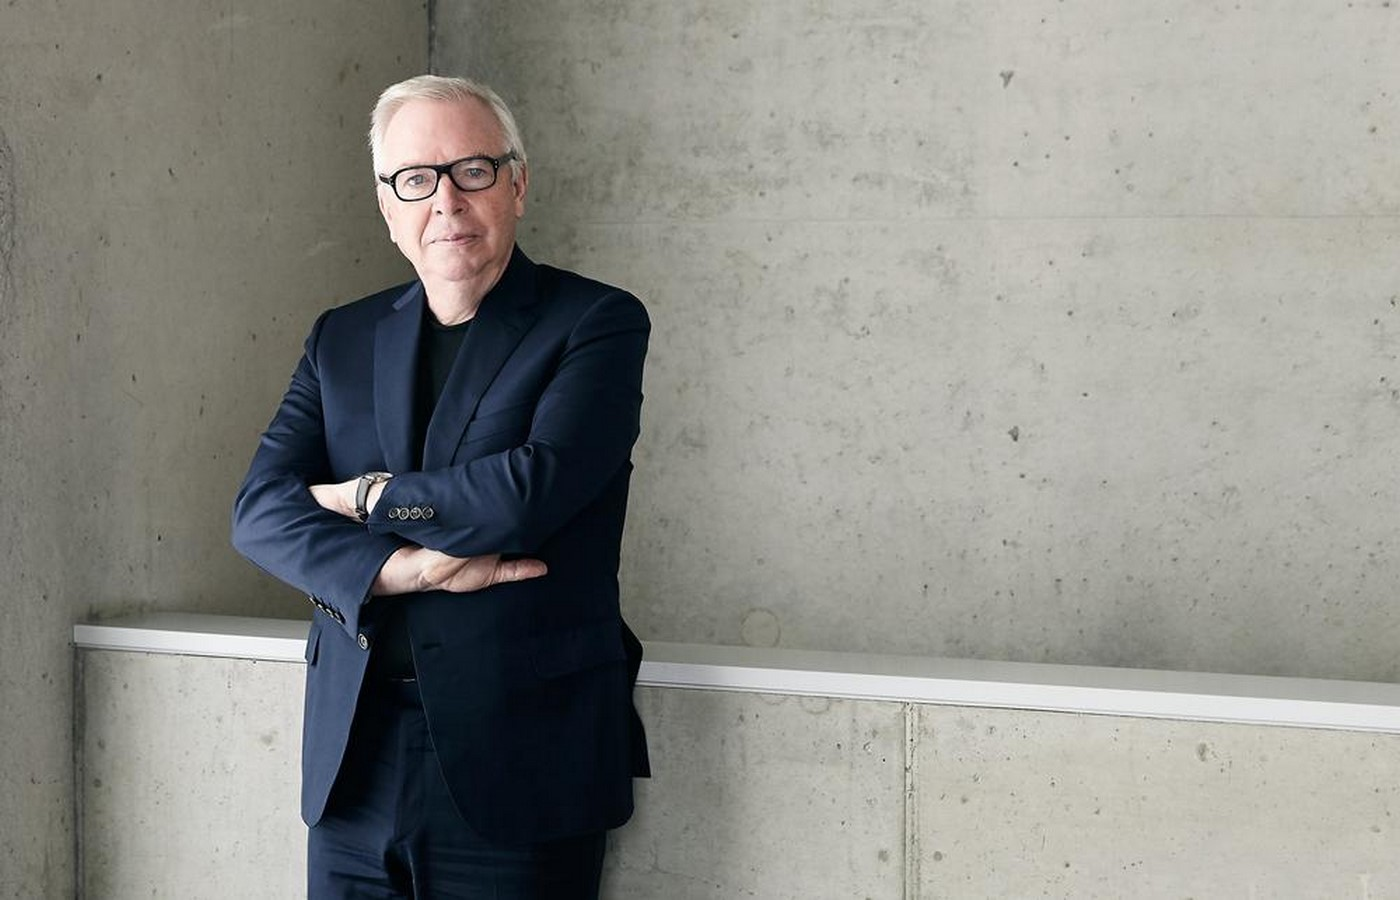 10 Things you did not know about David Chipperfield - Sheet1